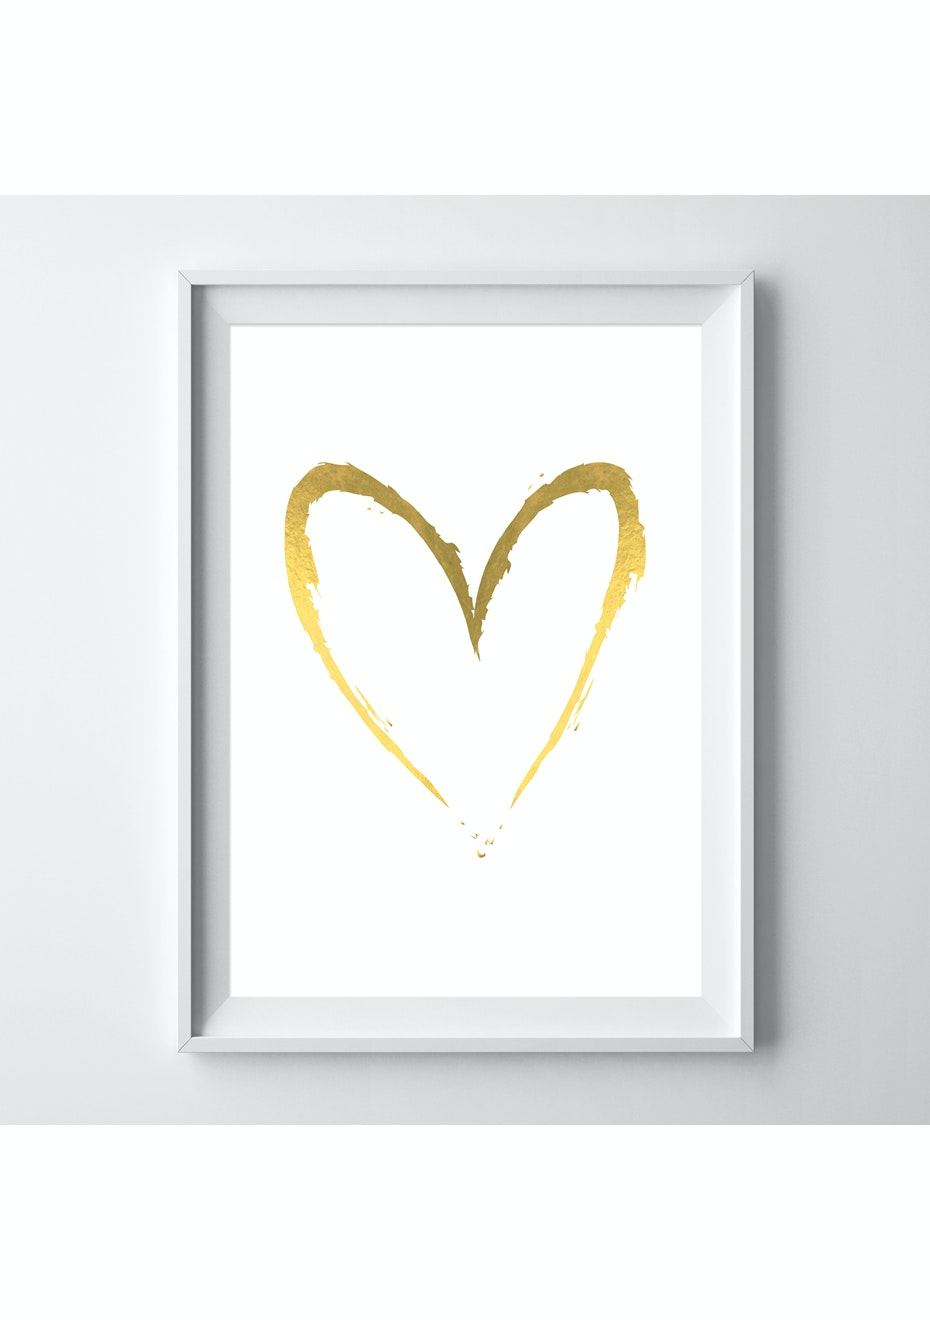 Simply Creative - White Heart - A4 Gold Foil Print